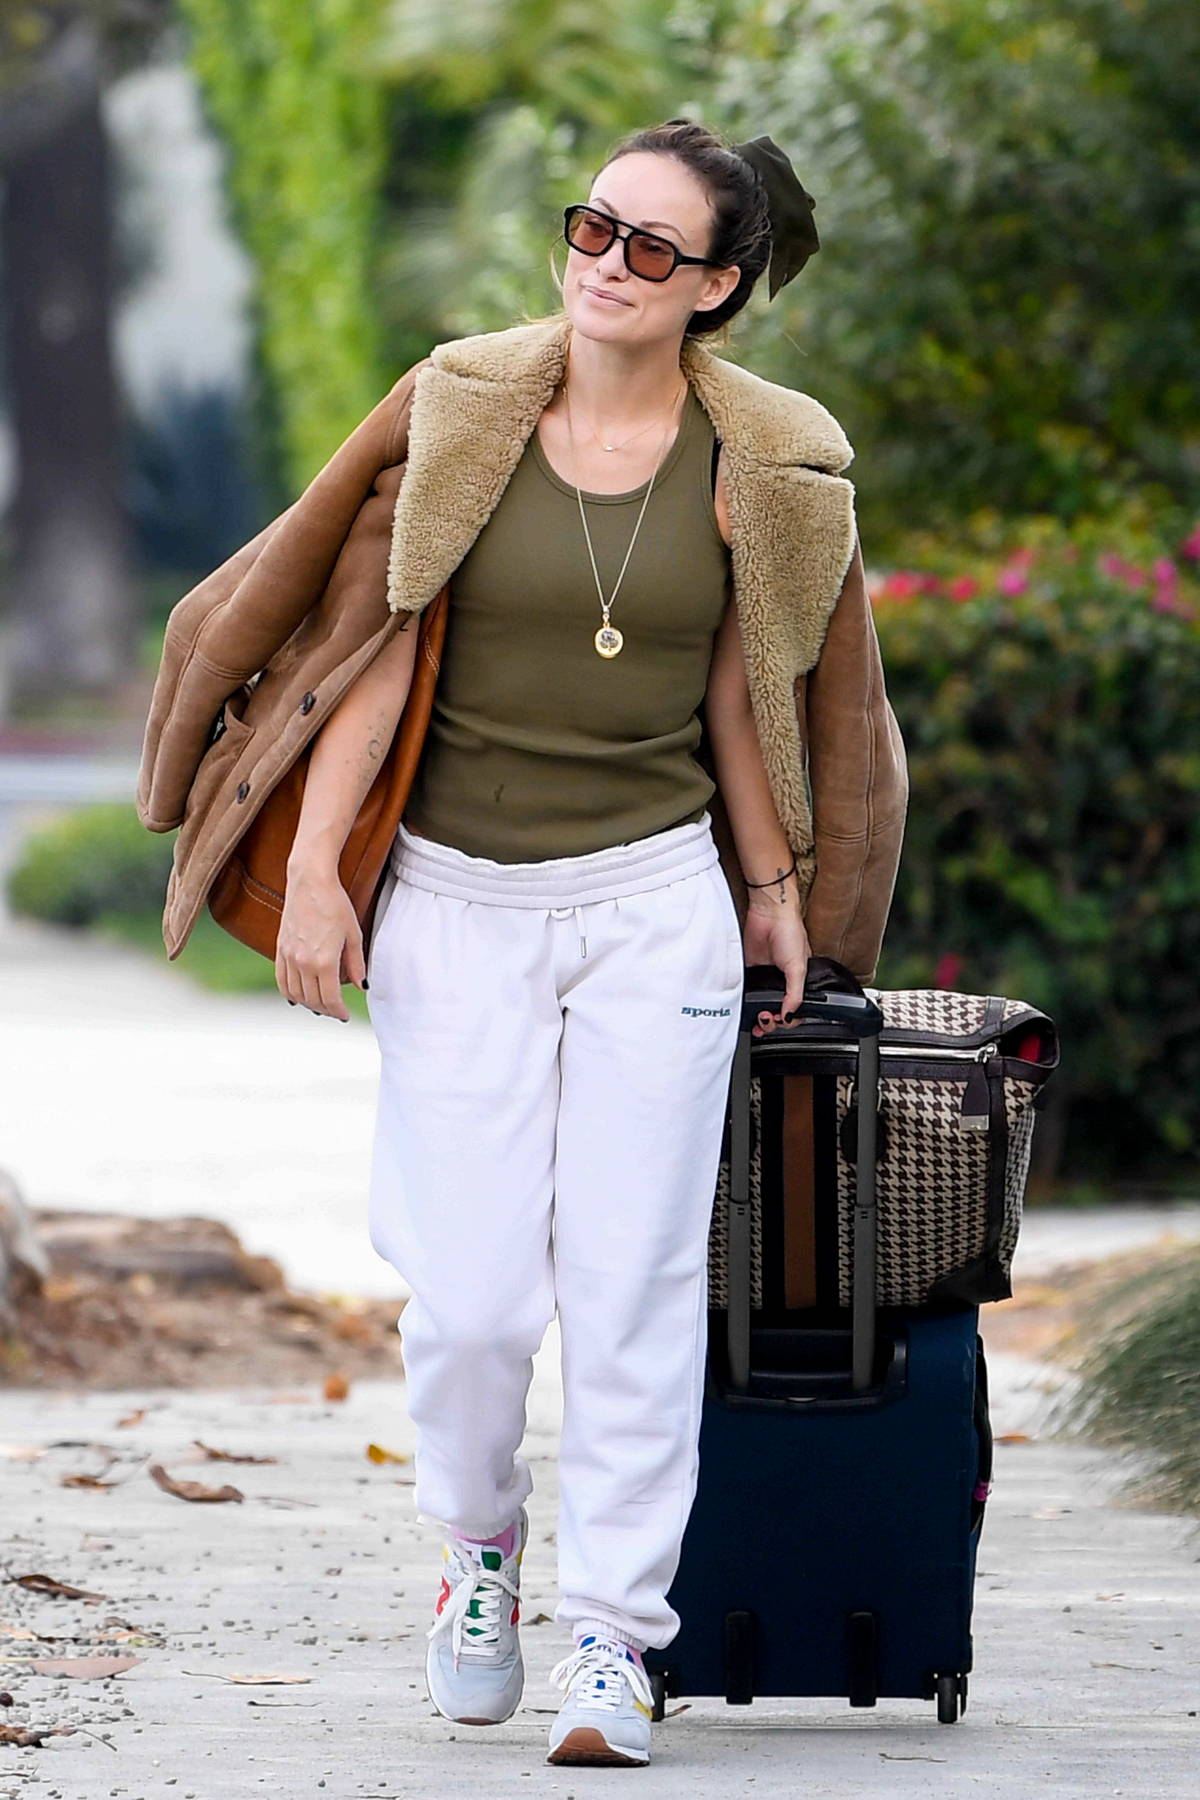 Olivia Wilde rocks an army green tank top and white sweatpants while heading out with her luggage in Los Angeles